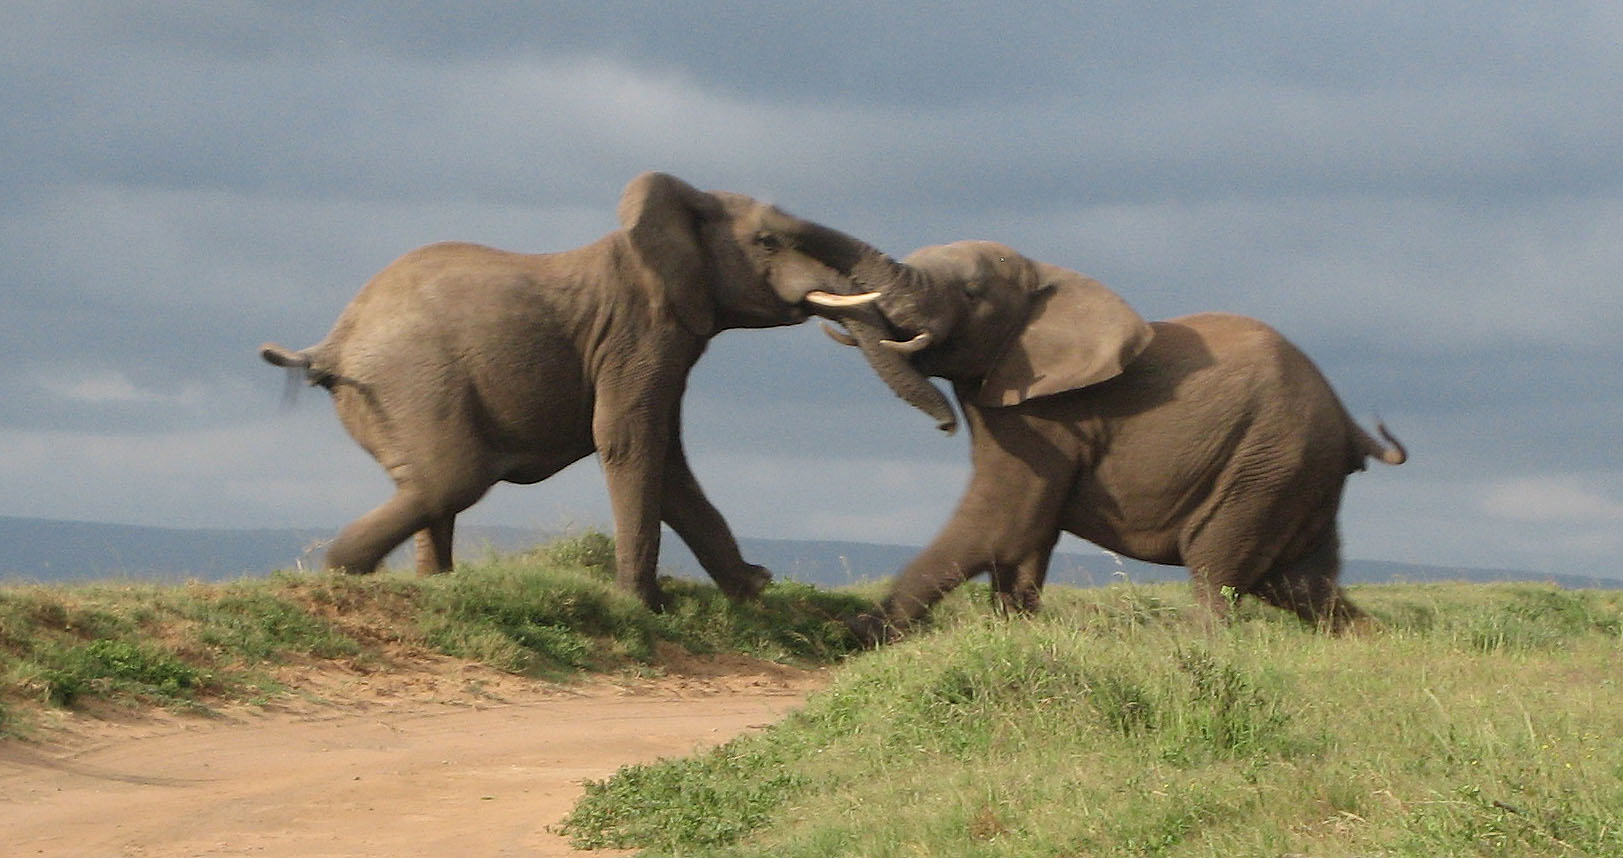 elephants fighting | otb | online journal of politics and foreign